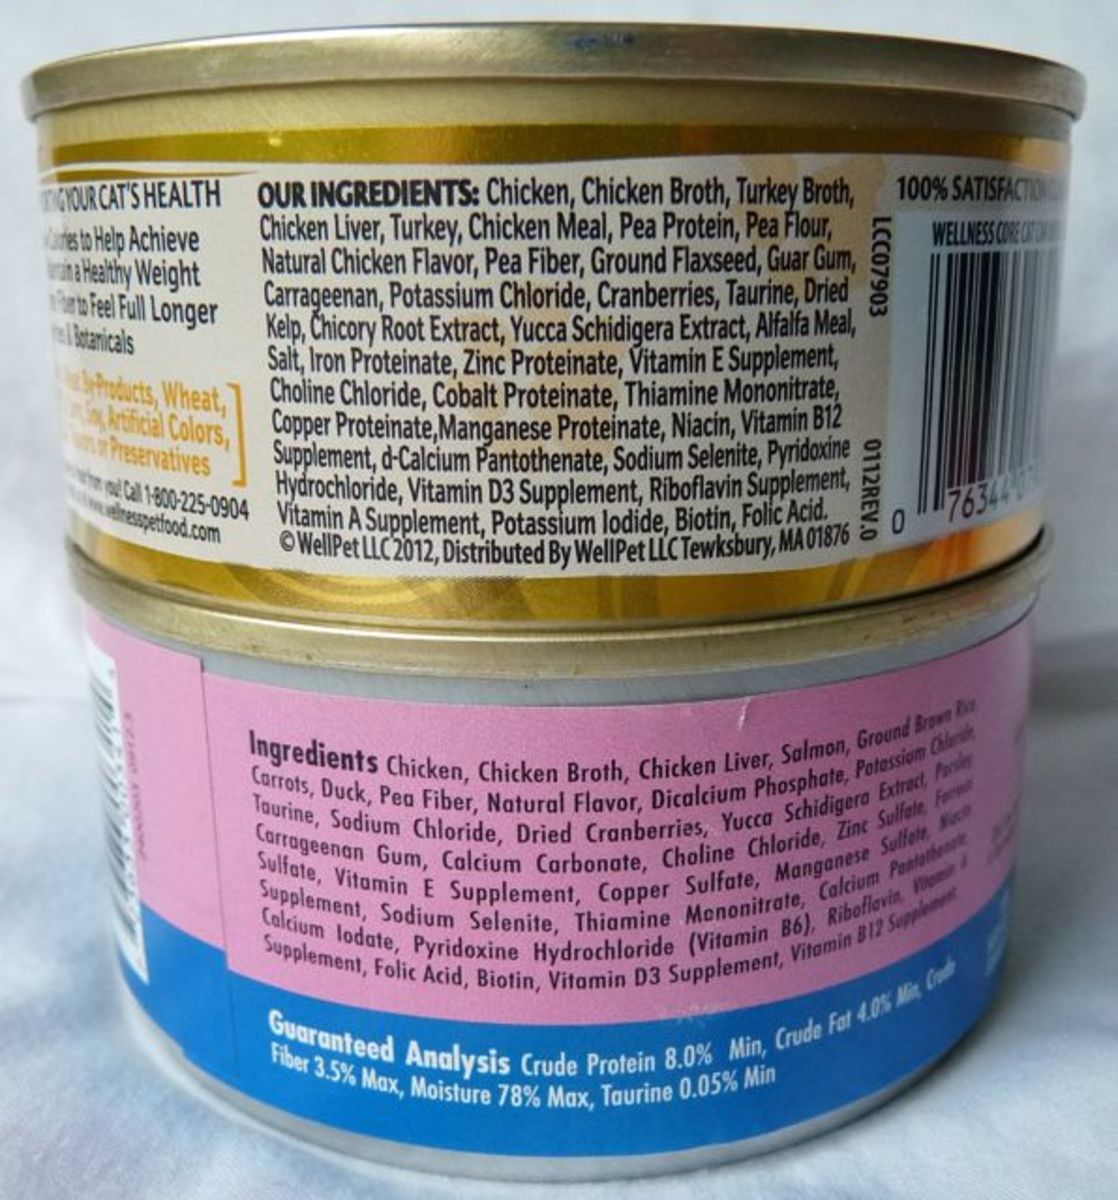 An ingredient label can tell you a lot about the quality of the food. The first ingredient should be real meat and not 'by-products'.